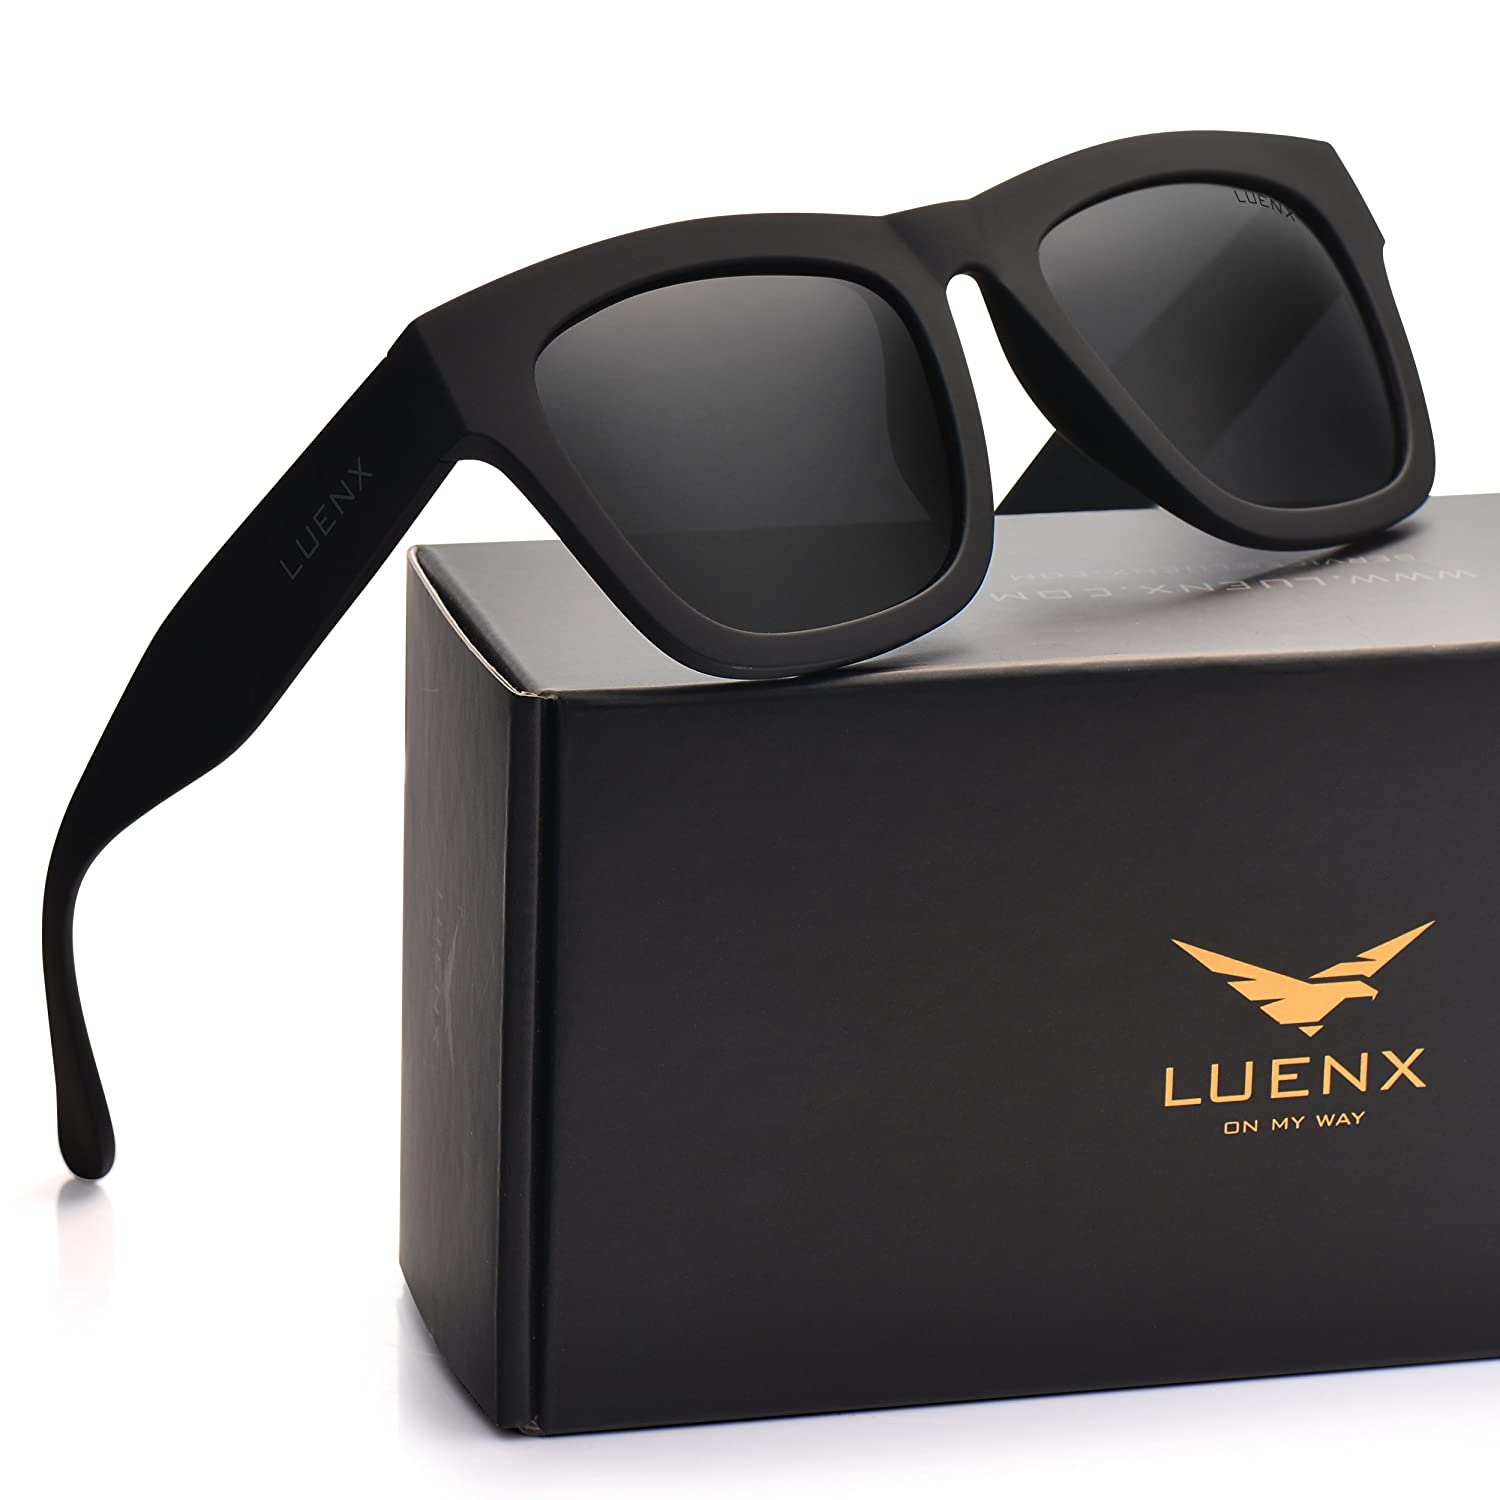 LUENX Mens Wayfarer Polarized Sunglasses Black Lens Matte Black Frame 58MM with Case CA2518-23